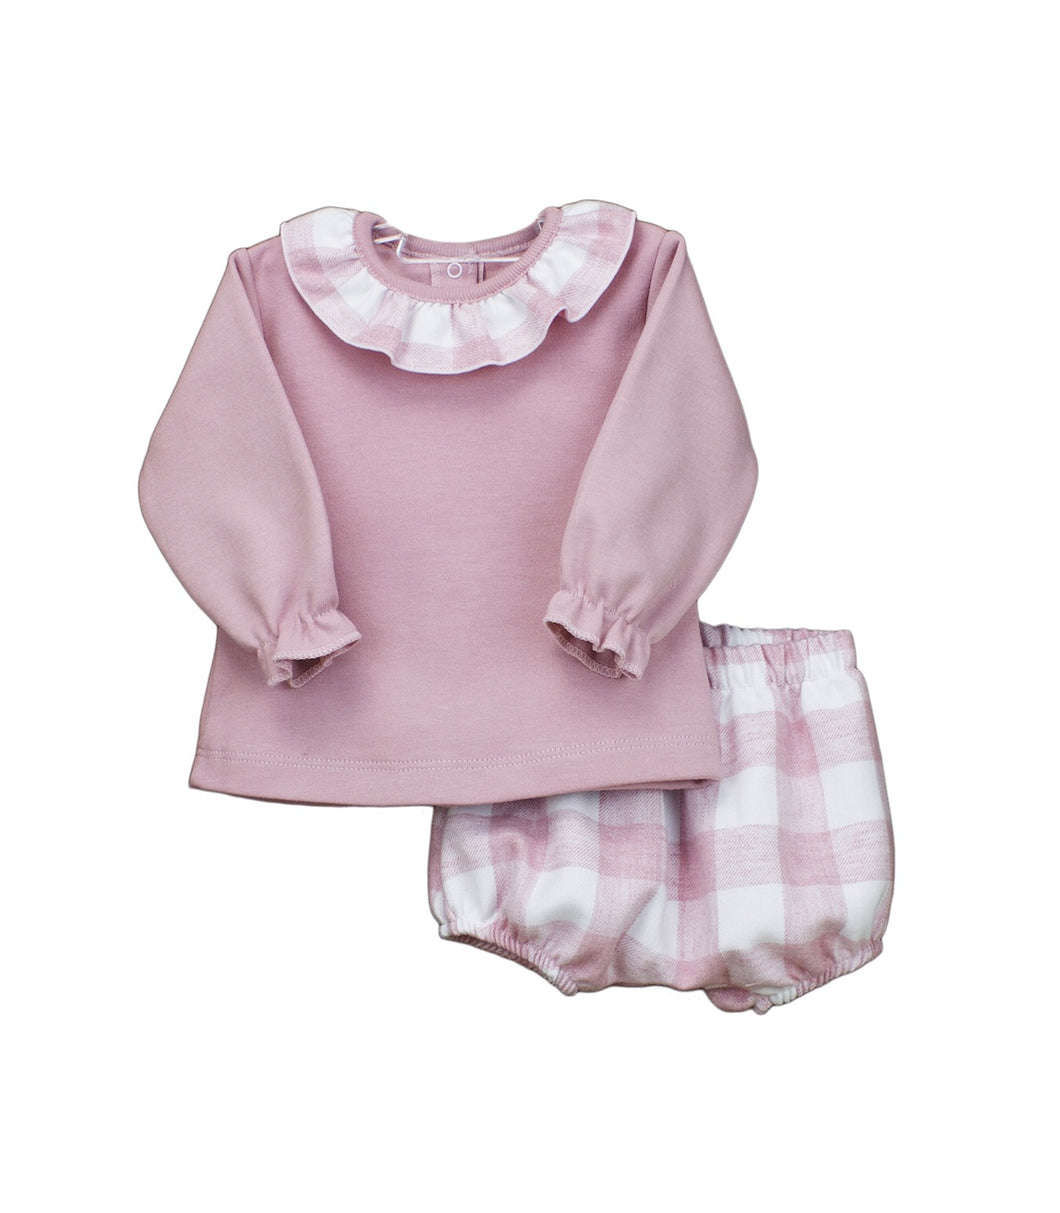 Baby Girls 2 Piece Shorts Set, Plain Long Sleeved Top with Contrasting Checked Fabric Frilled Collar with Checked Jam Pants in Soft Fabric